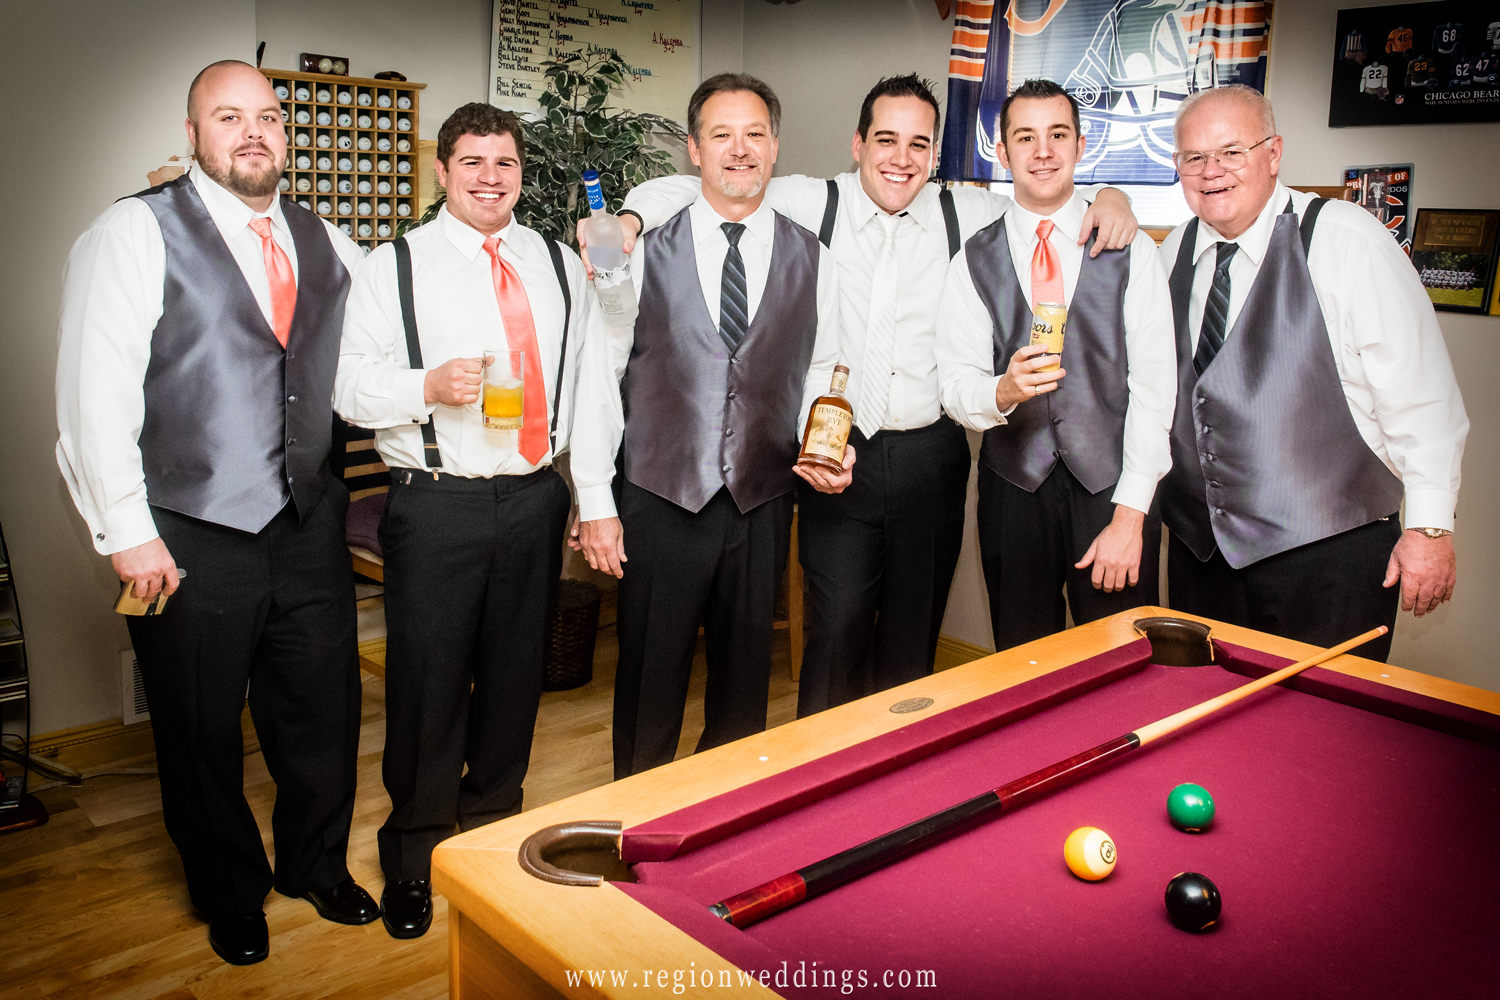 The guys toast the groom on wedding day.